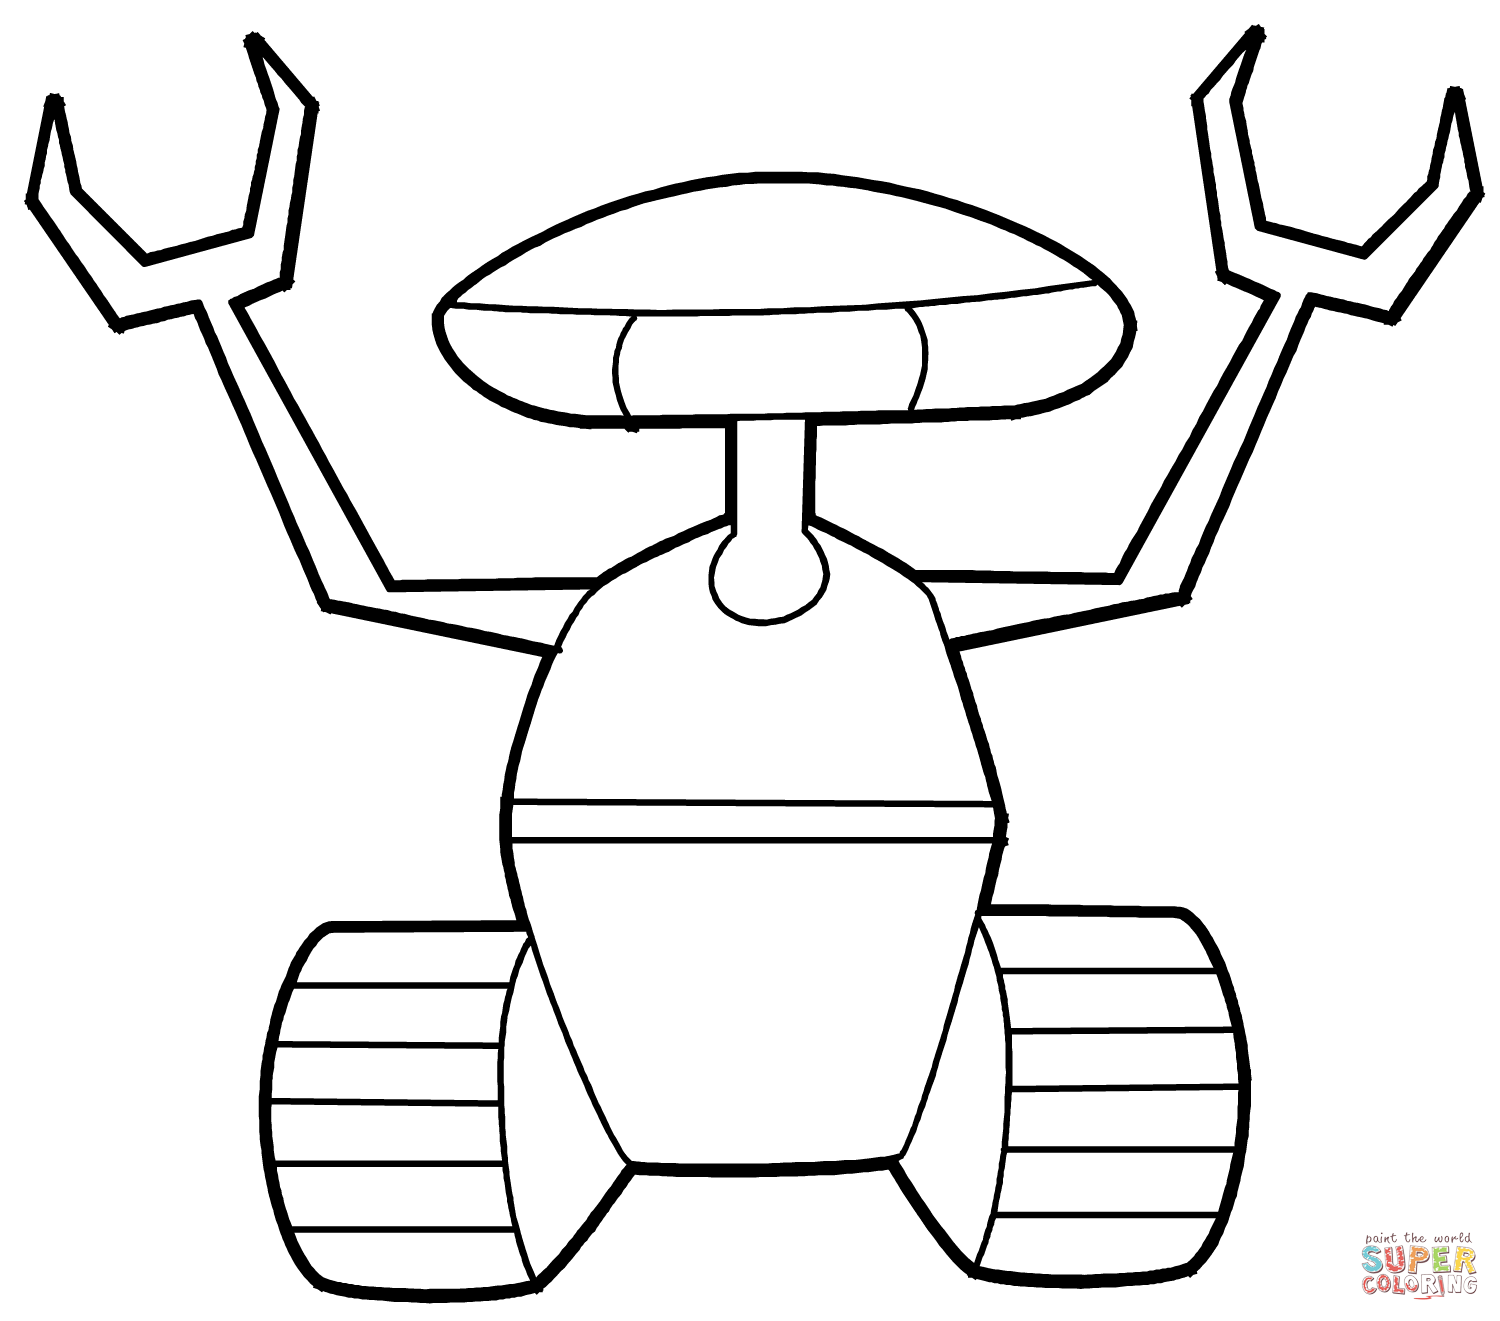 Robot coloring #14, Download drawings